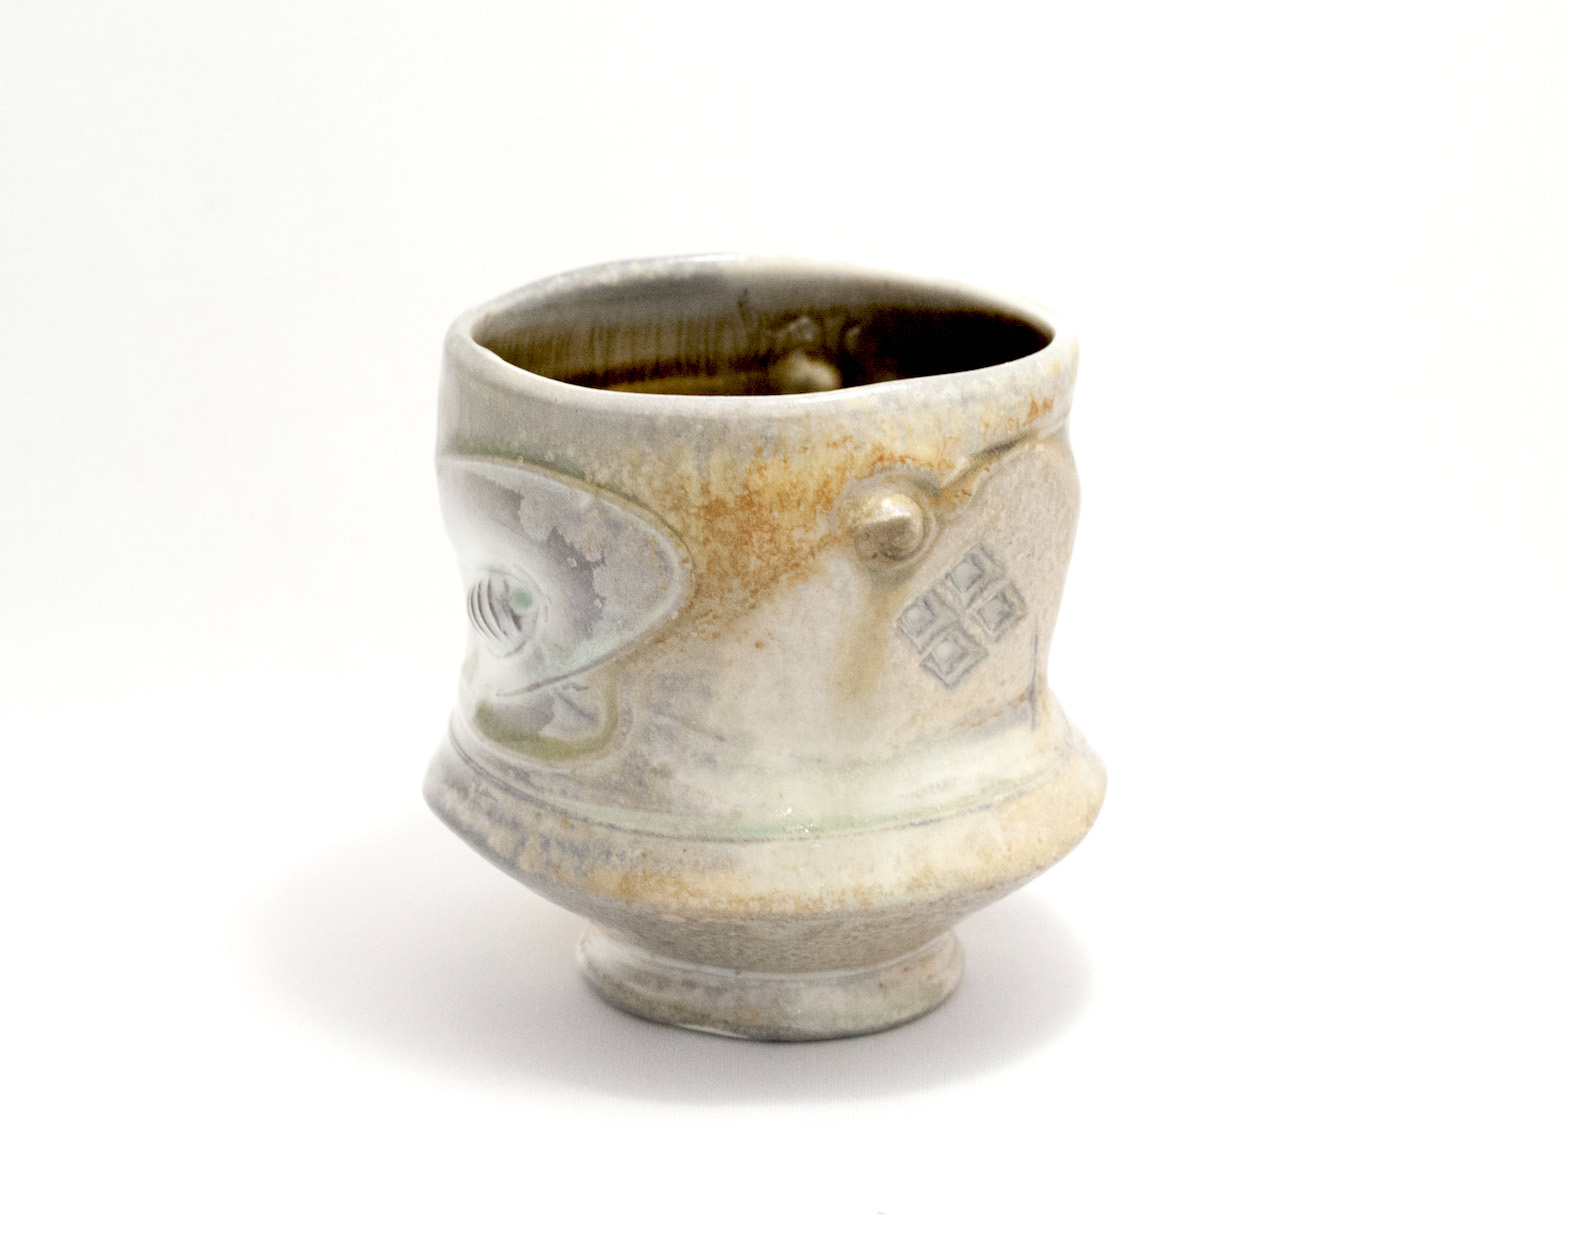 Tom Coleman, Wood Fired Tea Bowl, porcelain ceramic vessel, functional, pottery, cup, Sherrie Gallerie